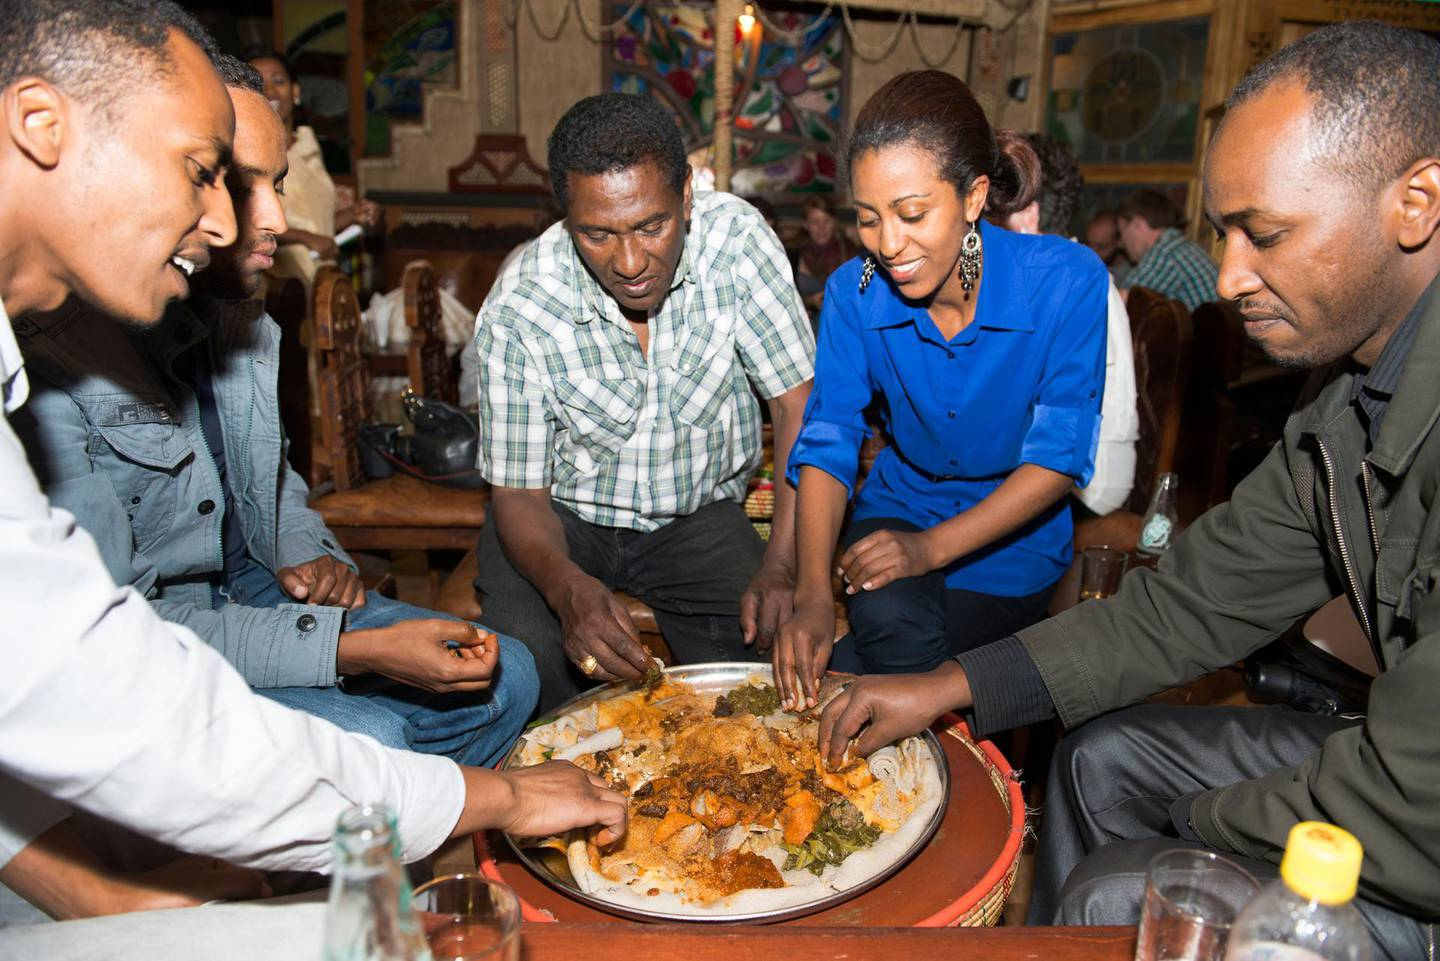 E0295E Ethiopians family and friends enjoy an Injera meal at the popular YOD Abyssinia Cultural Restaurant in Addis Ababa. Boaz Rottem / Alamy Stock Photo